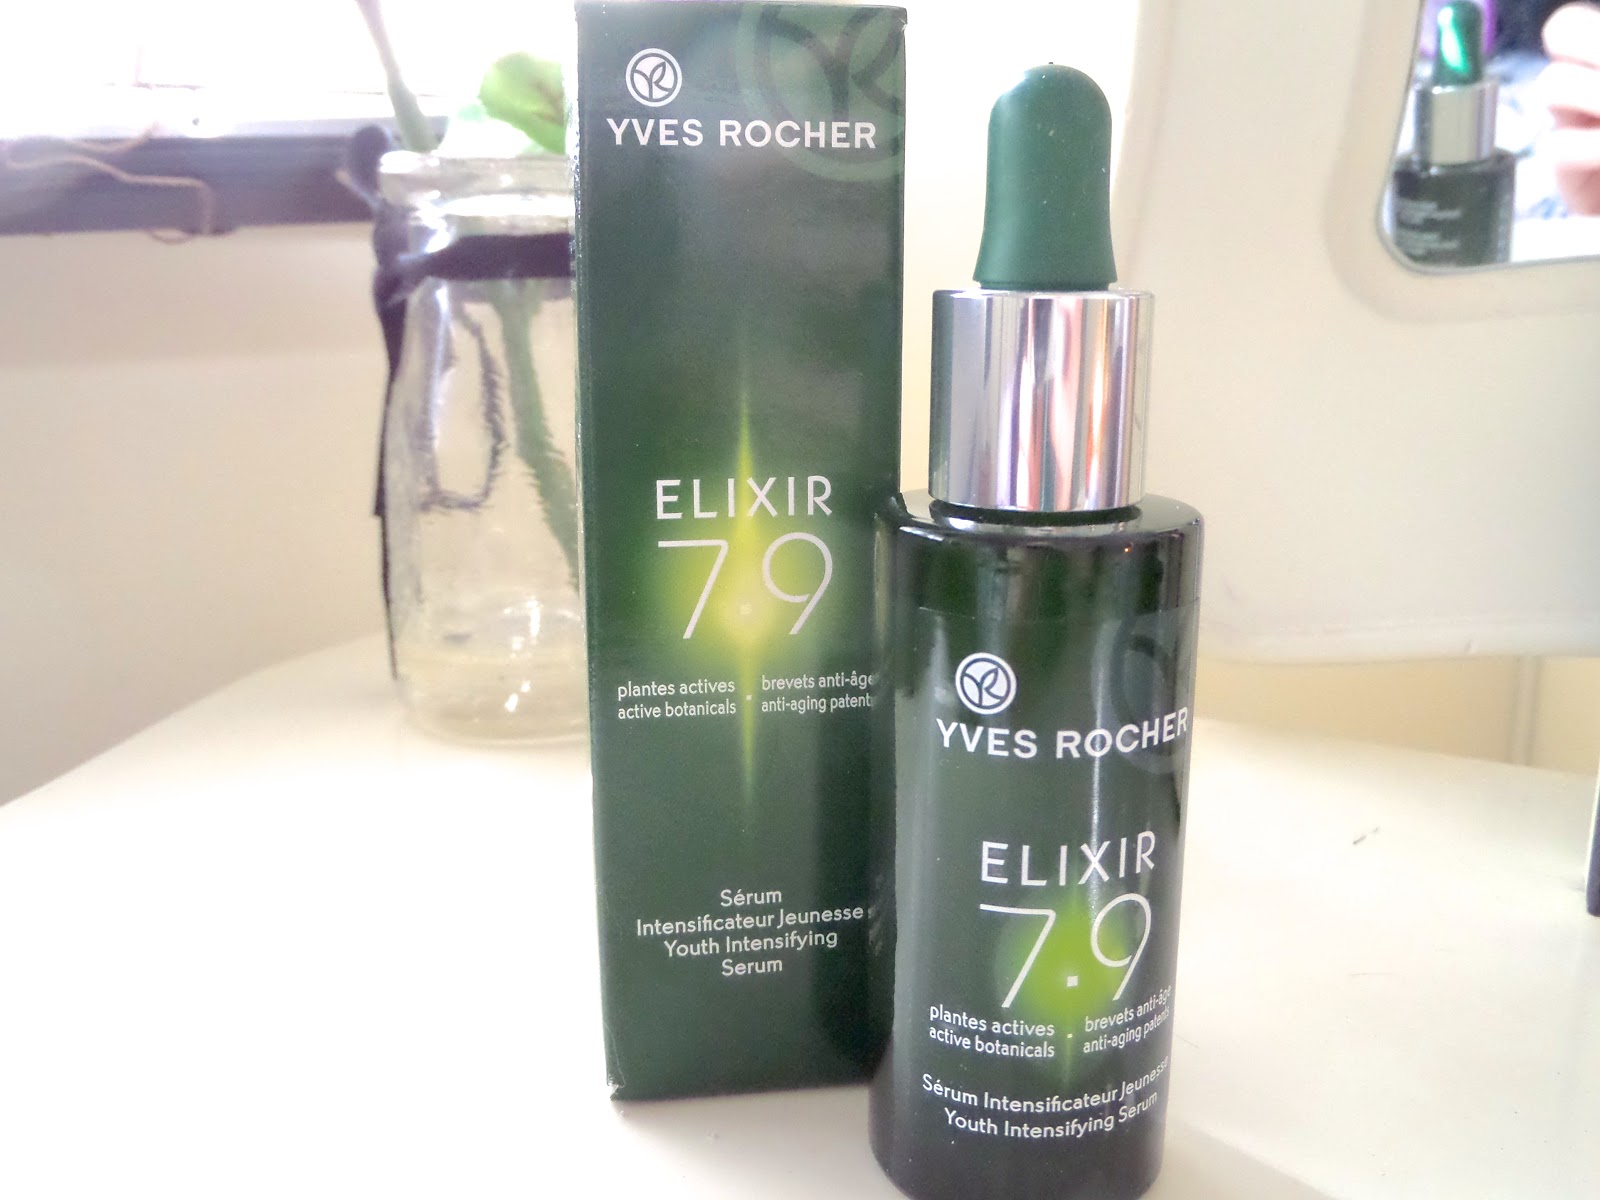 Yves Rocher Elixir 7.9 Youth Intensifier Serum Review